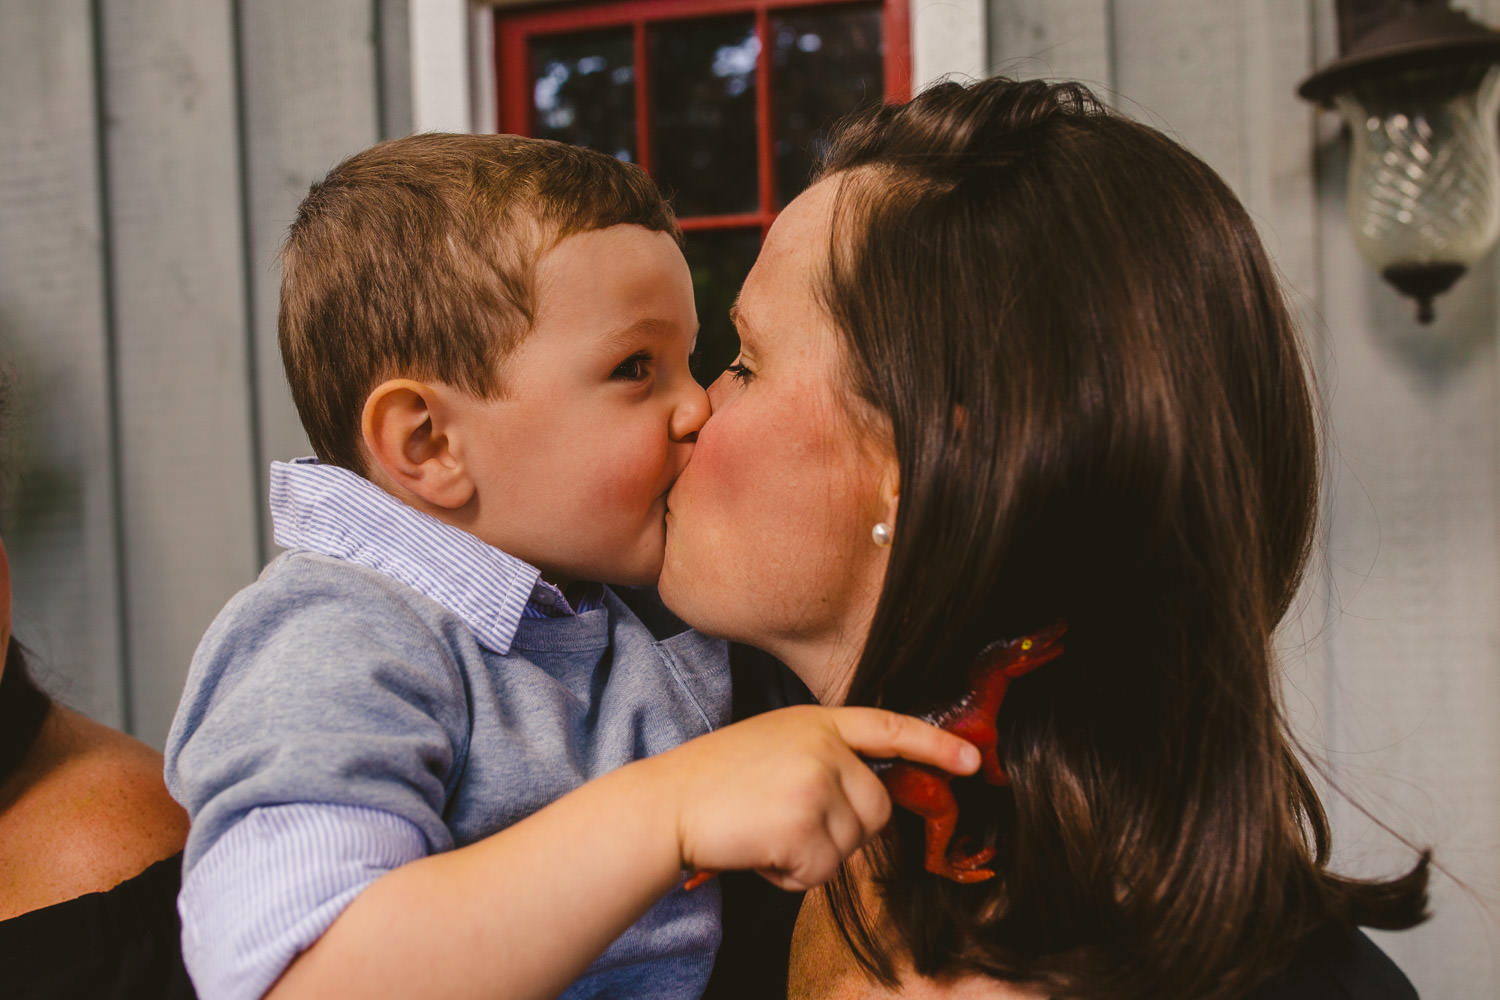 Little boy kissing his mom